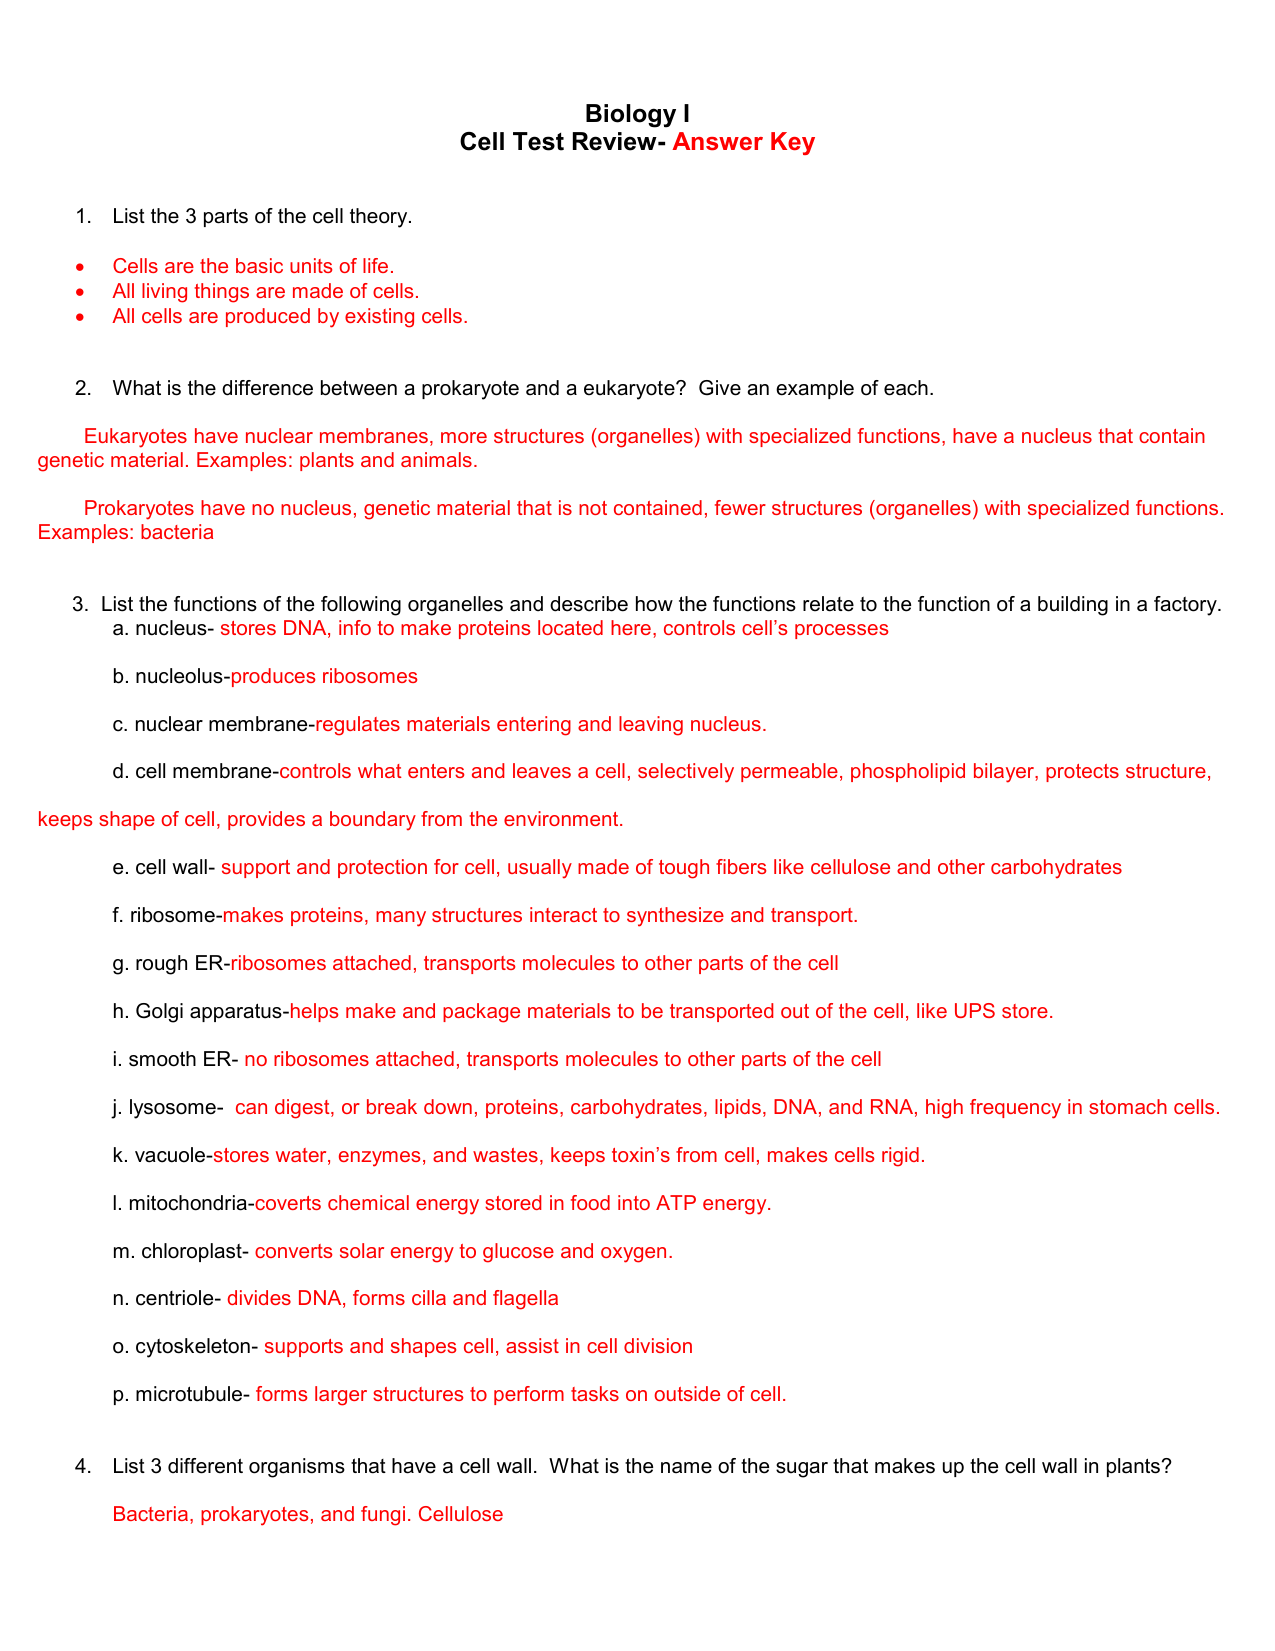 Biology I Cell Test Review- Answer Key List the 3 parts of ...